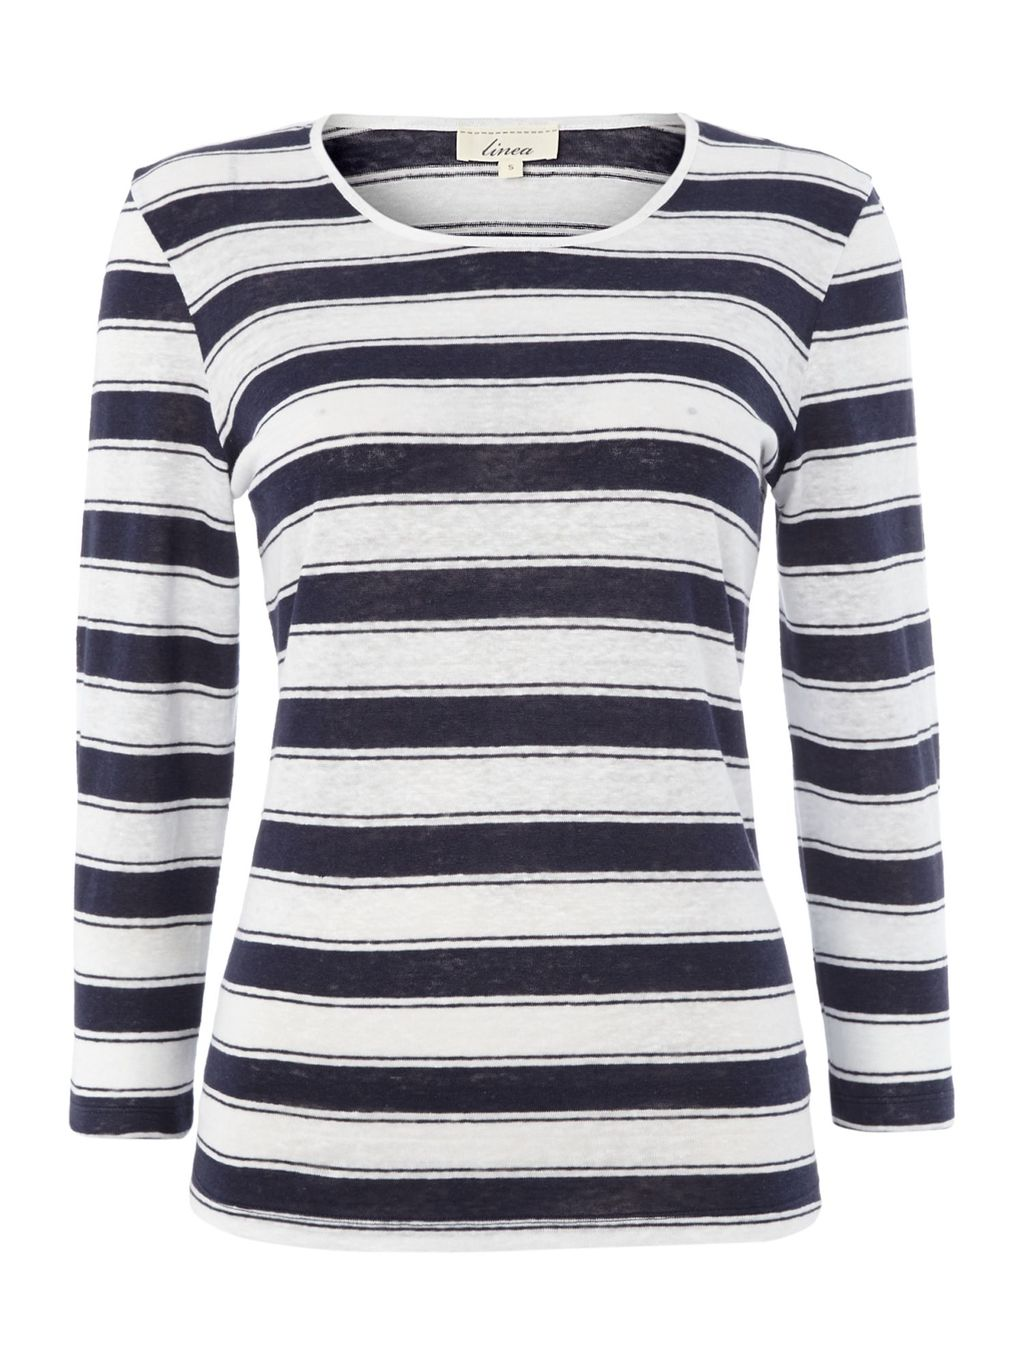 Stripe Jersey Top In 100% Linen, Navy - pattern: horizontal stripes; style: t-shirt; predominant colour: white; secondary colour: navy; occasions: casual; length: standard; fibres: linen - 100%; fit: body skimming; neckline: crew; sleeve length: long sleeve; sleeve style: standard; texture group: jersey - clingy; pattern type: fabric; pattern size: standard; season: s/s 2016